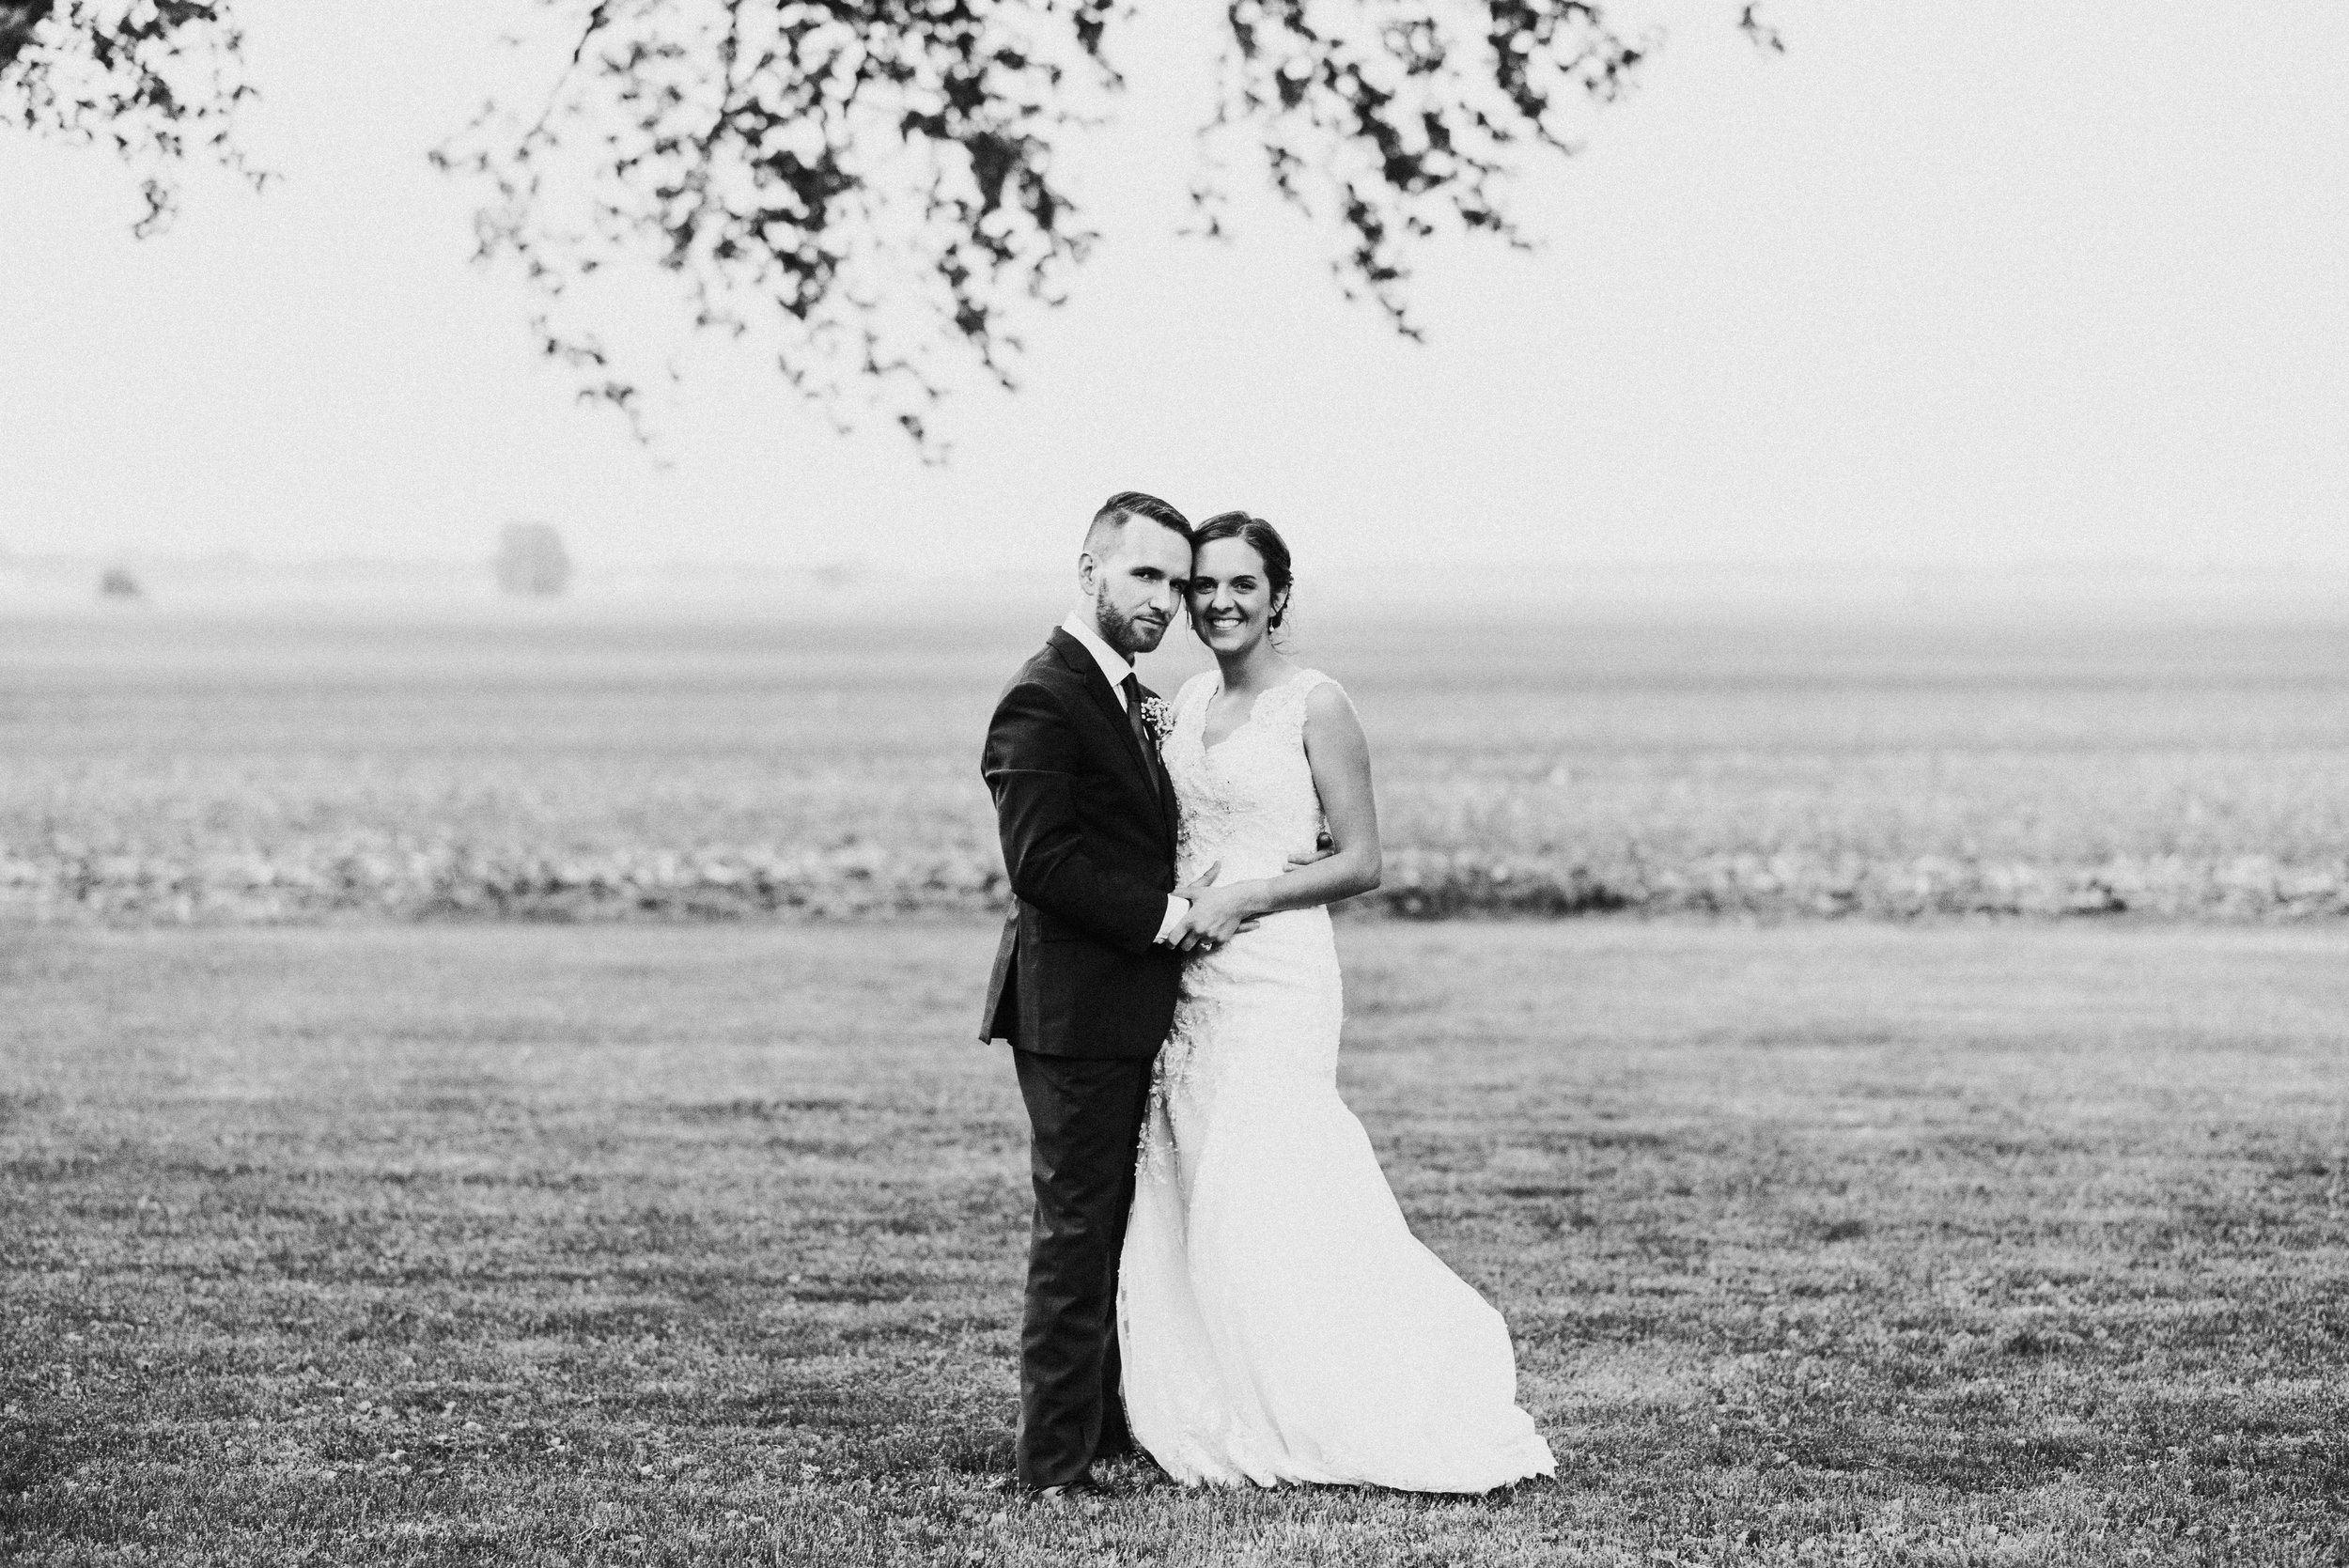 Rachael and Will - Rustic Romantic Barn Wedding | The Mora Farm Waterman, IL | Chicago Wedding Photographer